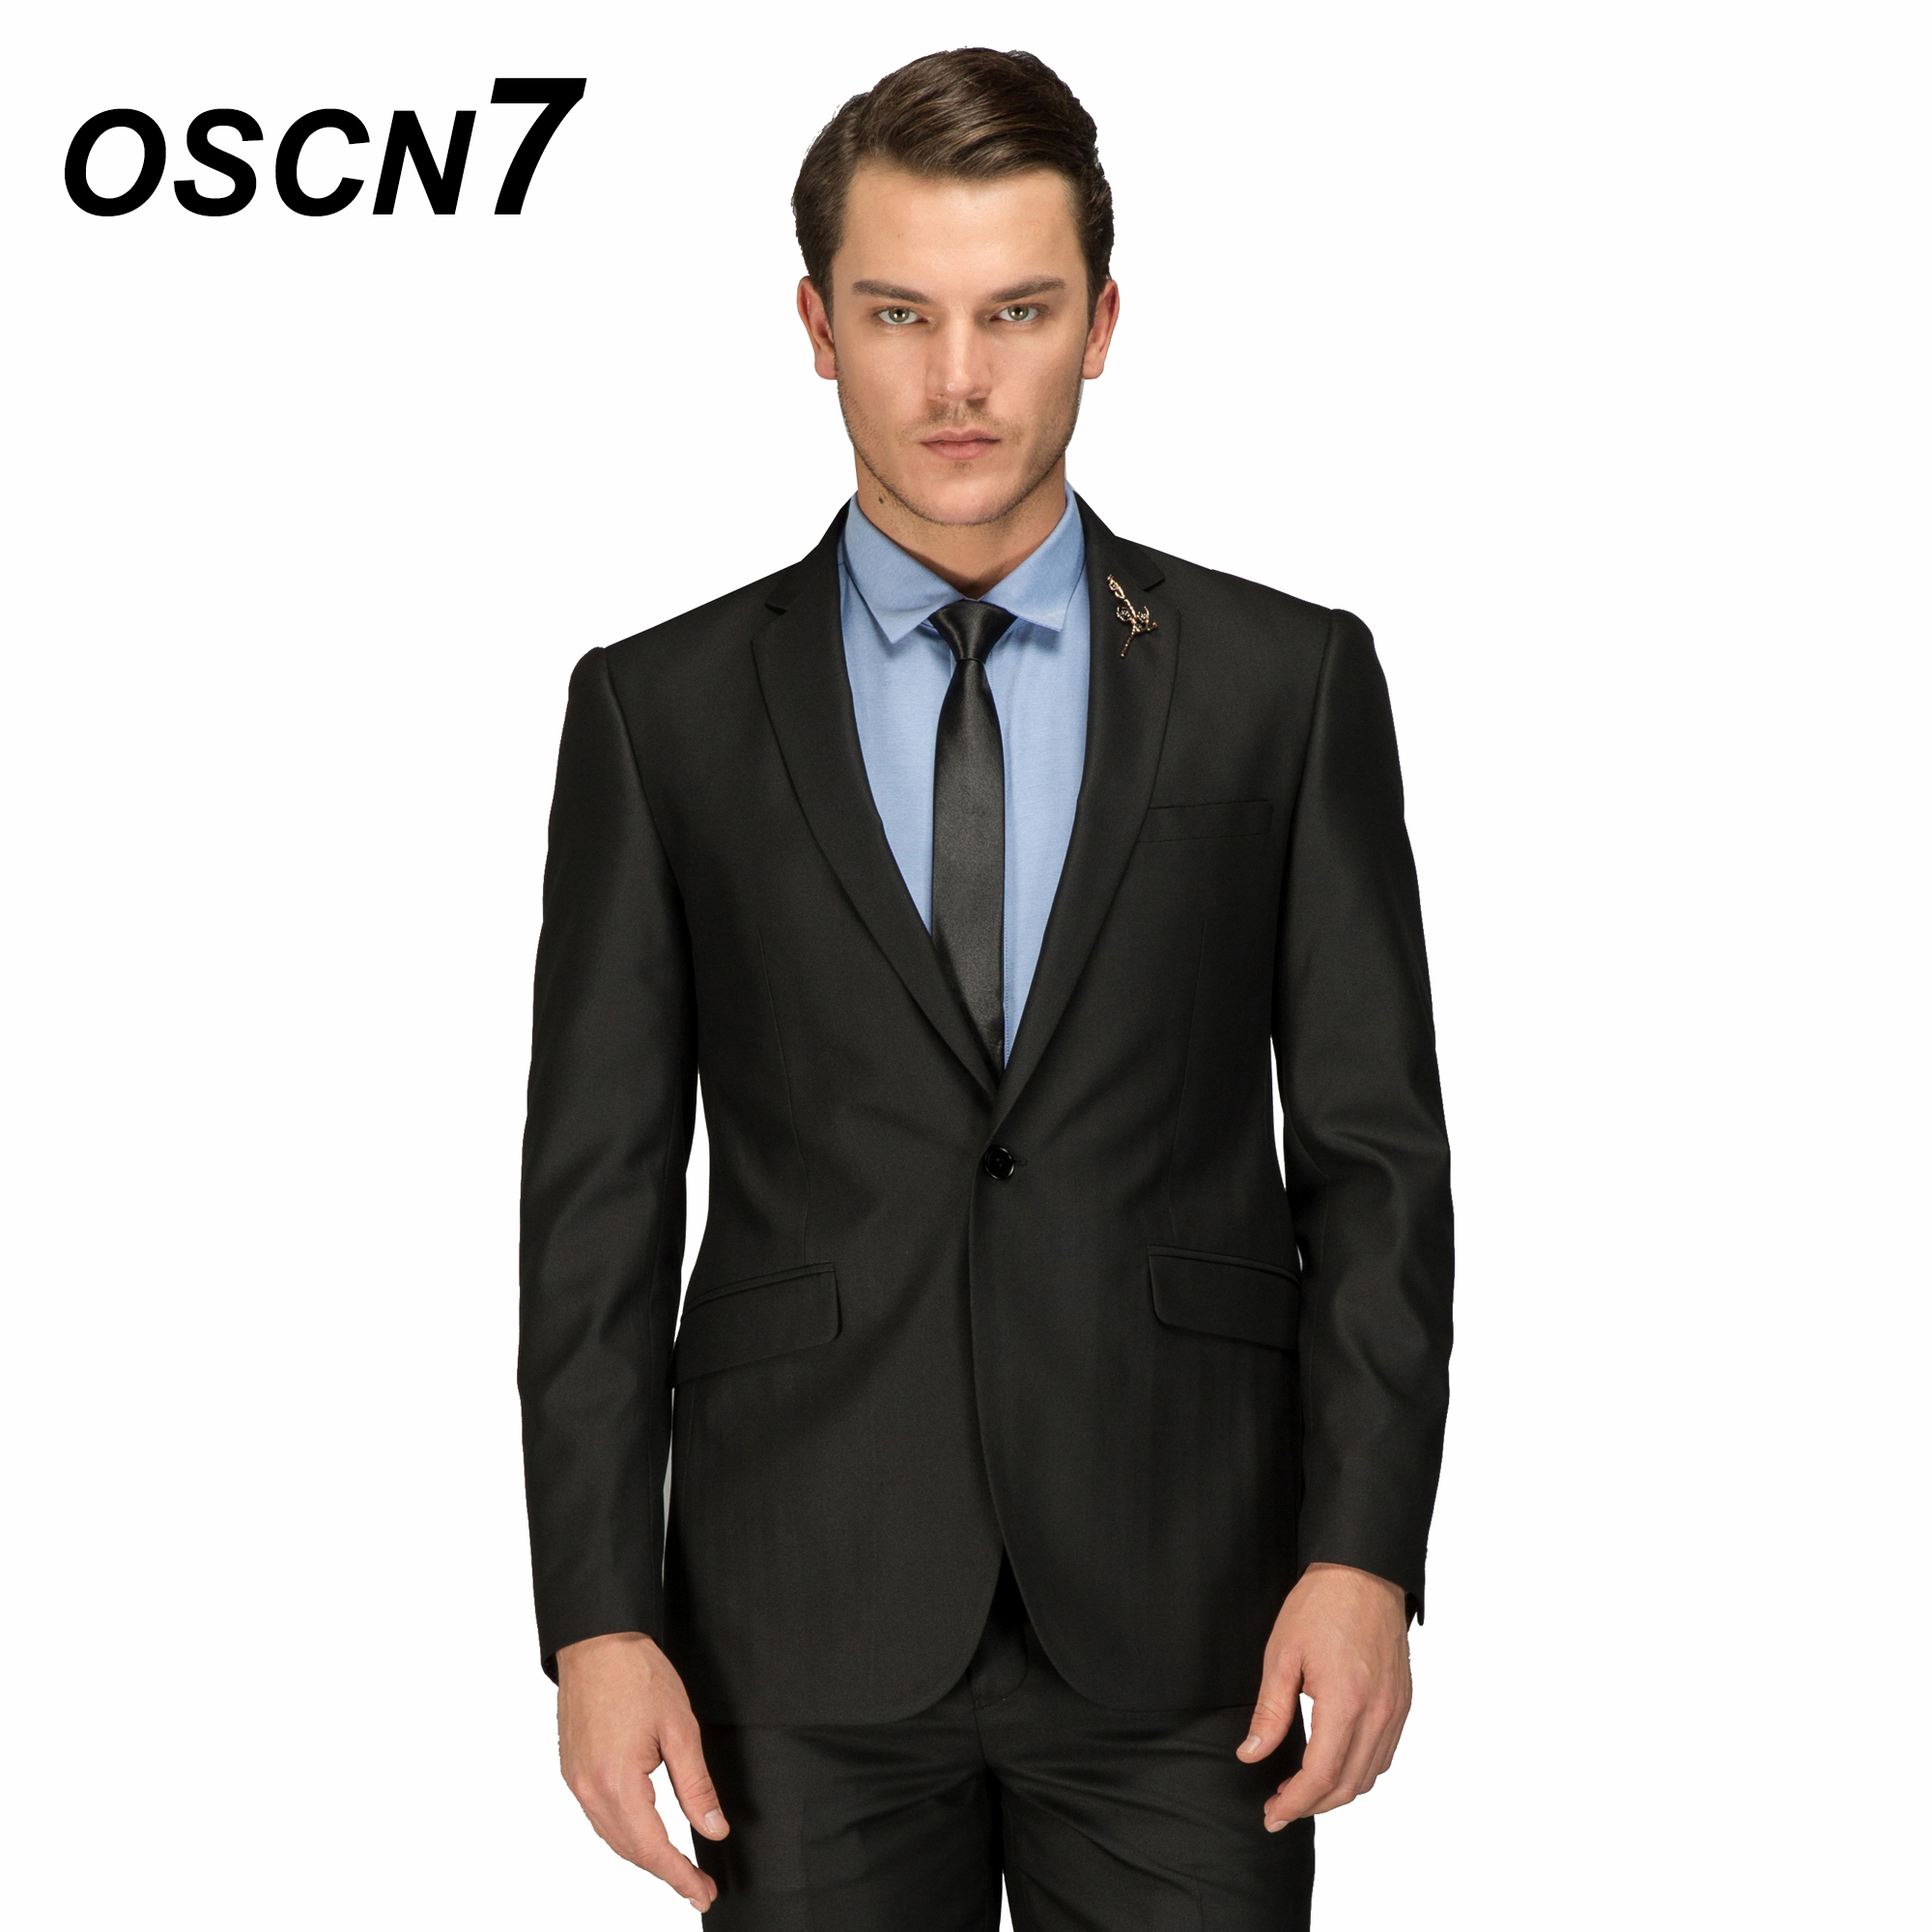 Dynamic Oscn7 Solid Black Tailor Made Suits Business Gentleman Classic Wool Suit Men 2pcs Leisure Costume Homme 158-2c11x